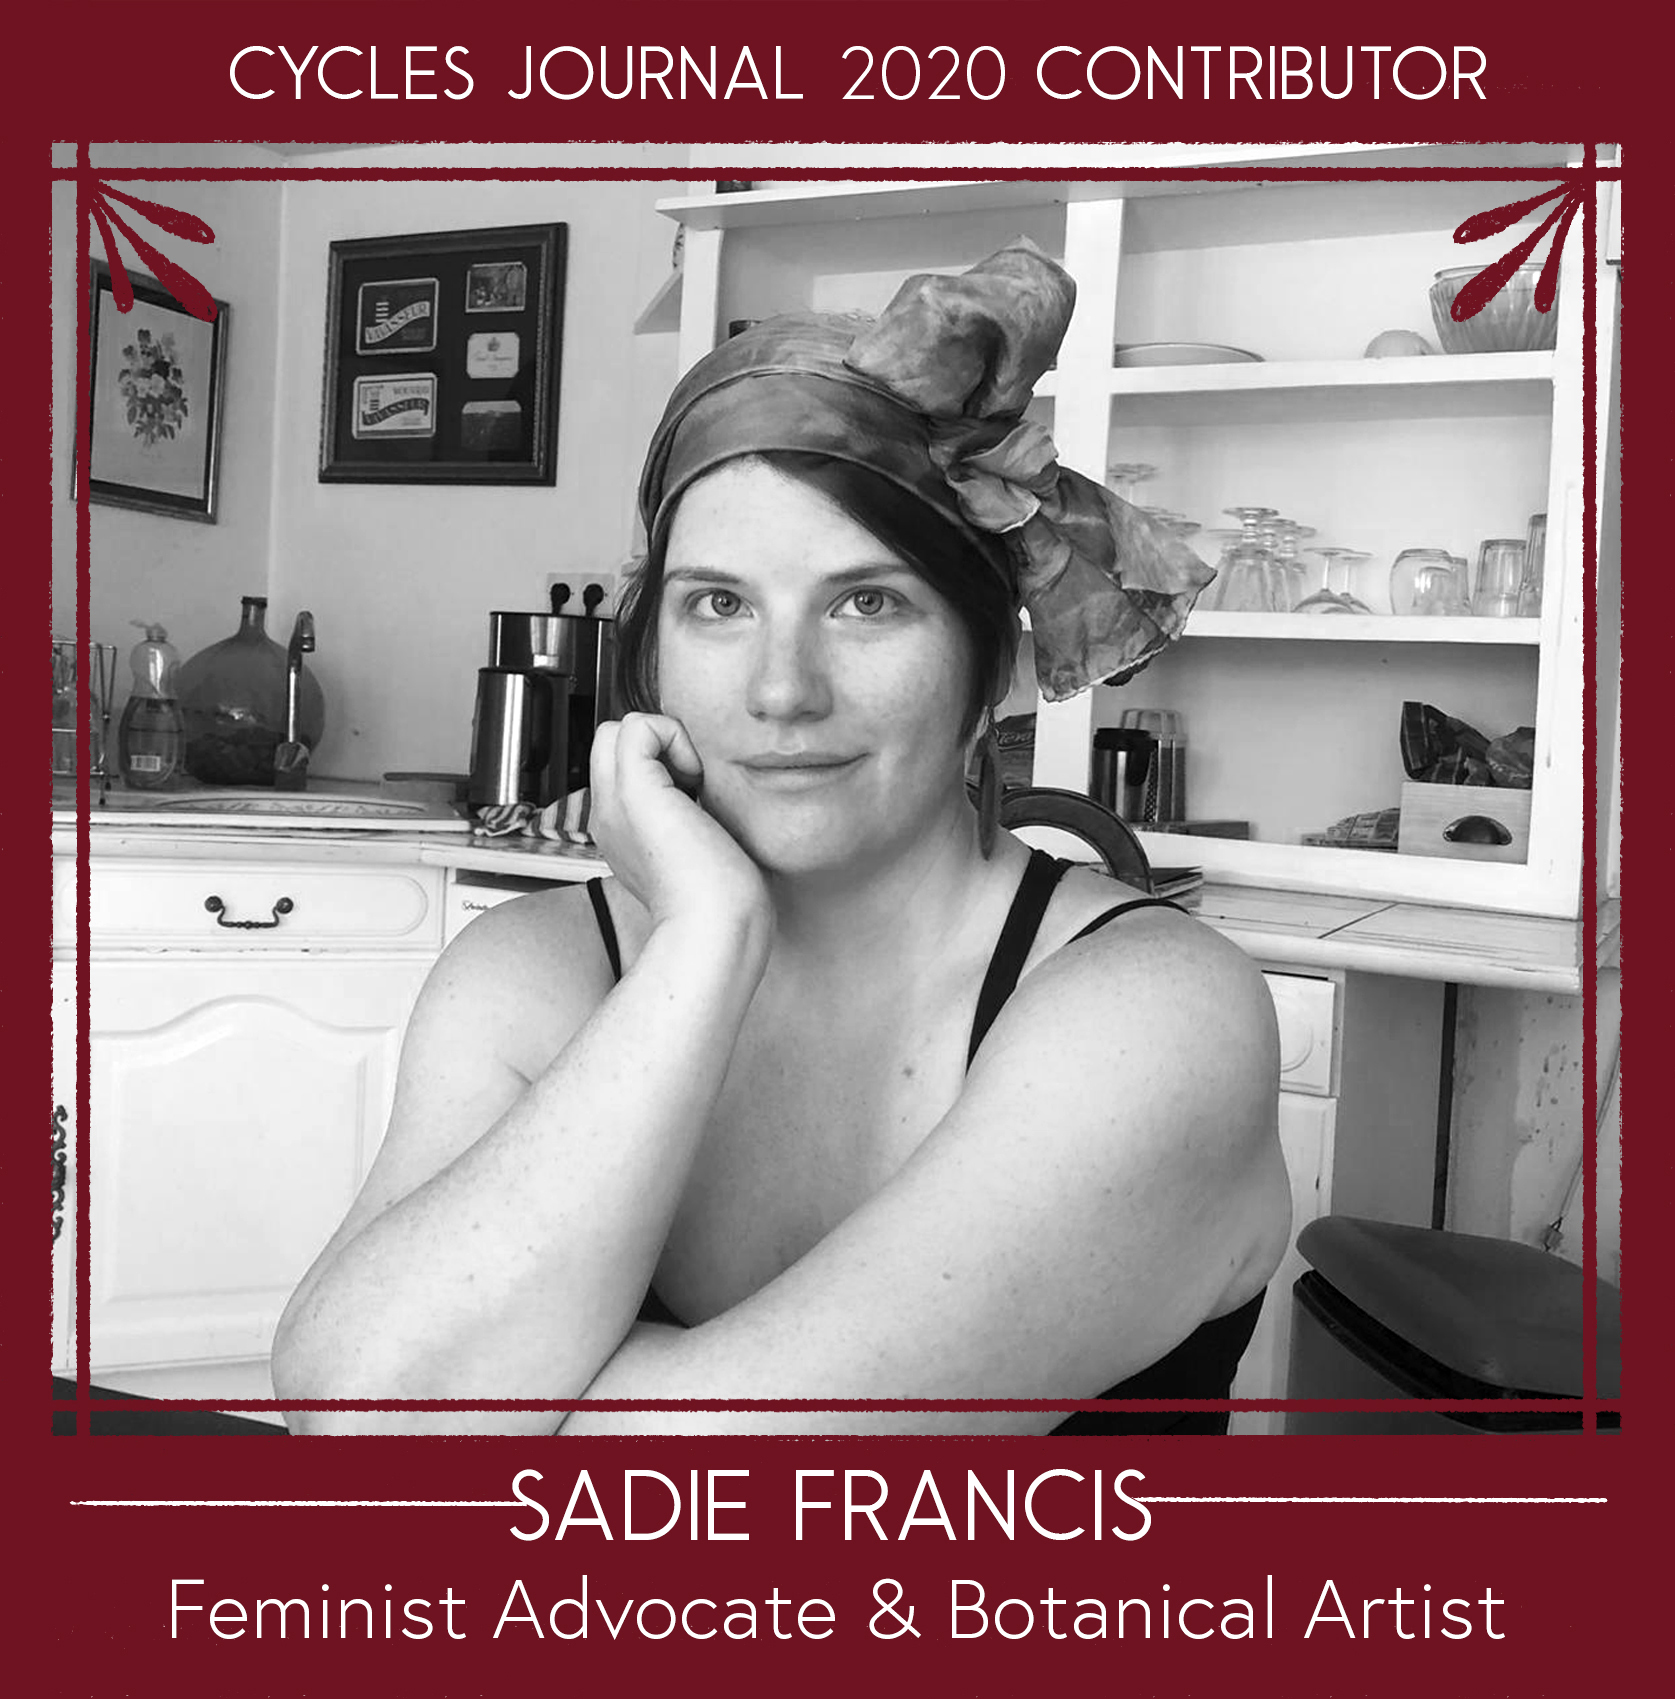 Sadie Francis - Feminist Advocate & Botanical ArtistSadie Francis is an environmental artist, biophilic consultant, and naturalist. Her work mostly focuses on the exploration of ecofeminist themes and natural cycles. Her inspiration is sourced from her deep respect and gratitude for the seemingly unlimited healing and bio remedial powers of the natural realm. She largely works in epoxy resin, foraged botanicals, cyanotype, and various found objects. She's been leading workshops on menstrual health and menstrual product safety for 15 years. She ideated, and co-curated the first Menstrual Art show in Philadelphia with partners in crime Rachael Amber and Chelsey Everest.Social: for natural philosophising and cat pics:@awakeninglands art page: @onlyintheforestWebsite: www.onlyintheforest.comEmail: sadiefrancis6221 (@) gmail.com